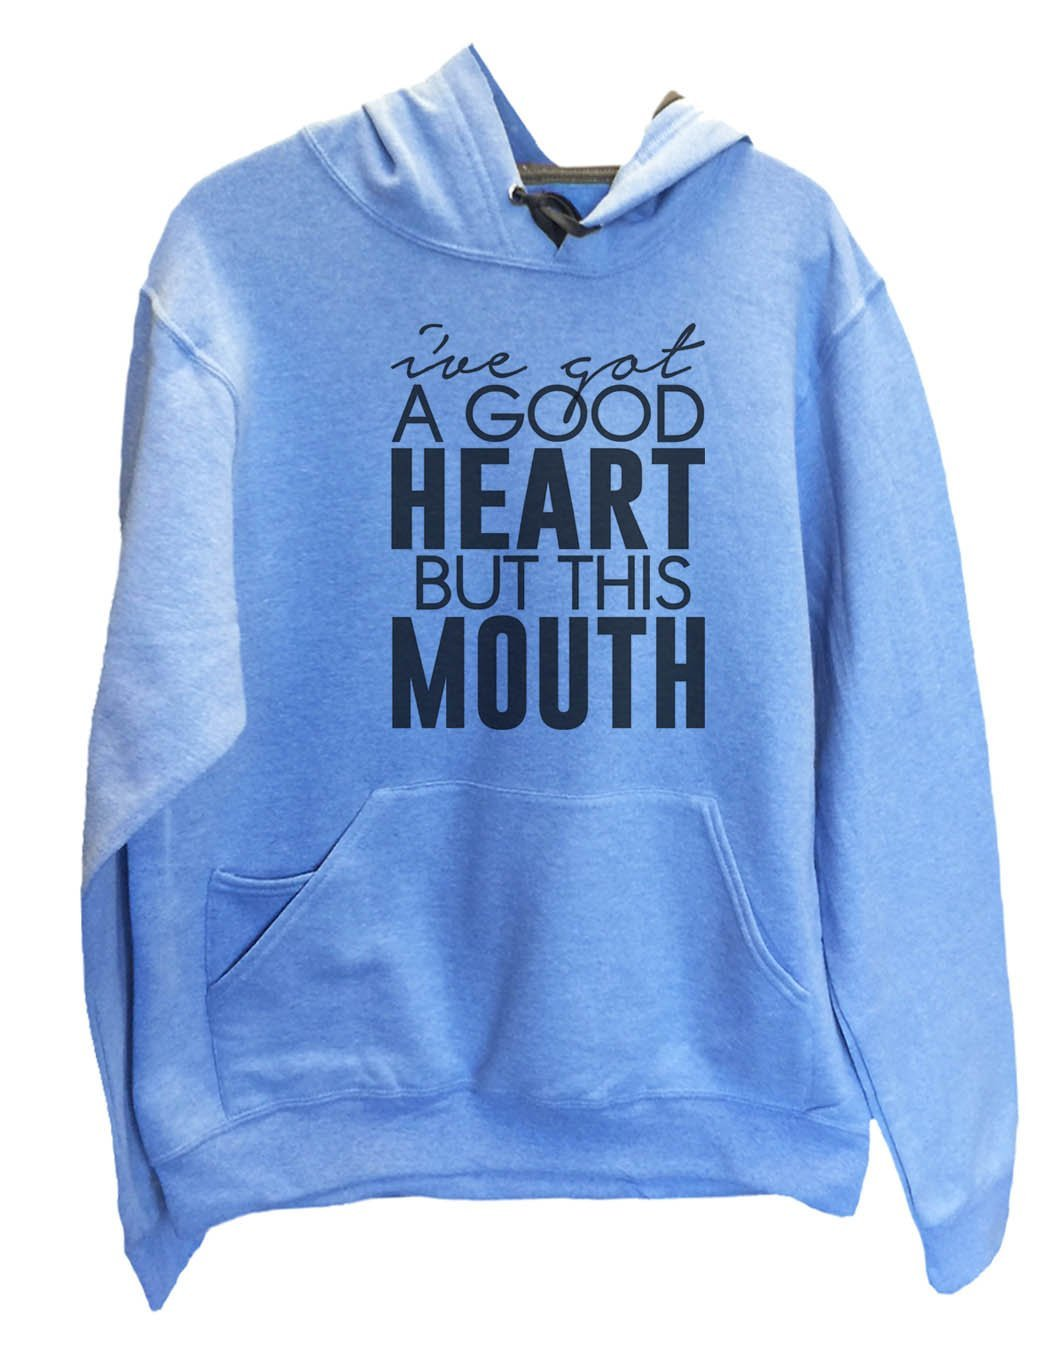 UNISEX HOODIE - I've Got A Good Heart But This Mouth - FUNNY MENS AND WOMENS HOODED SWEATSHIRTS - 2148 Funny Shirt Small / North Carolina Blue